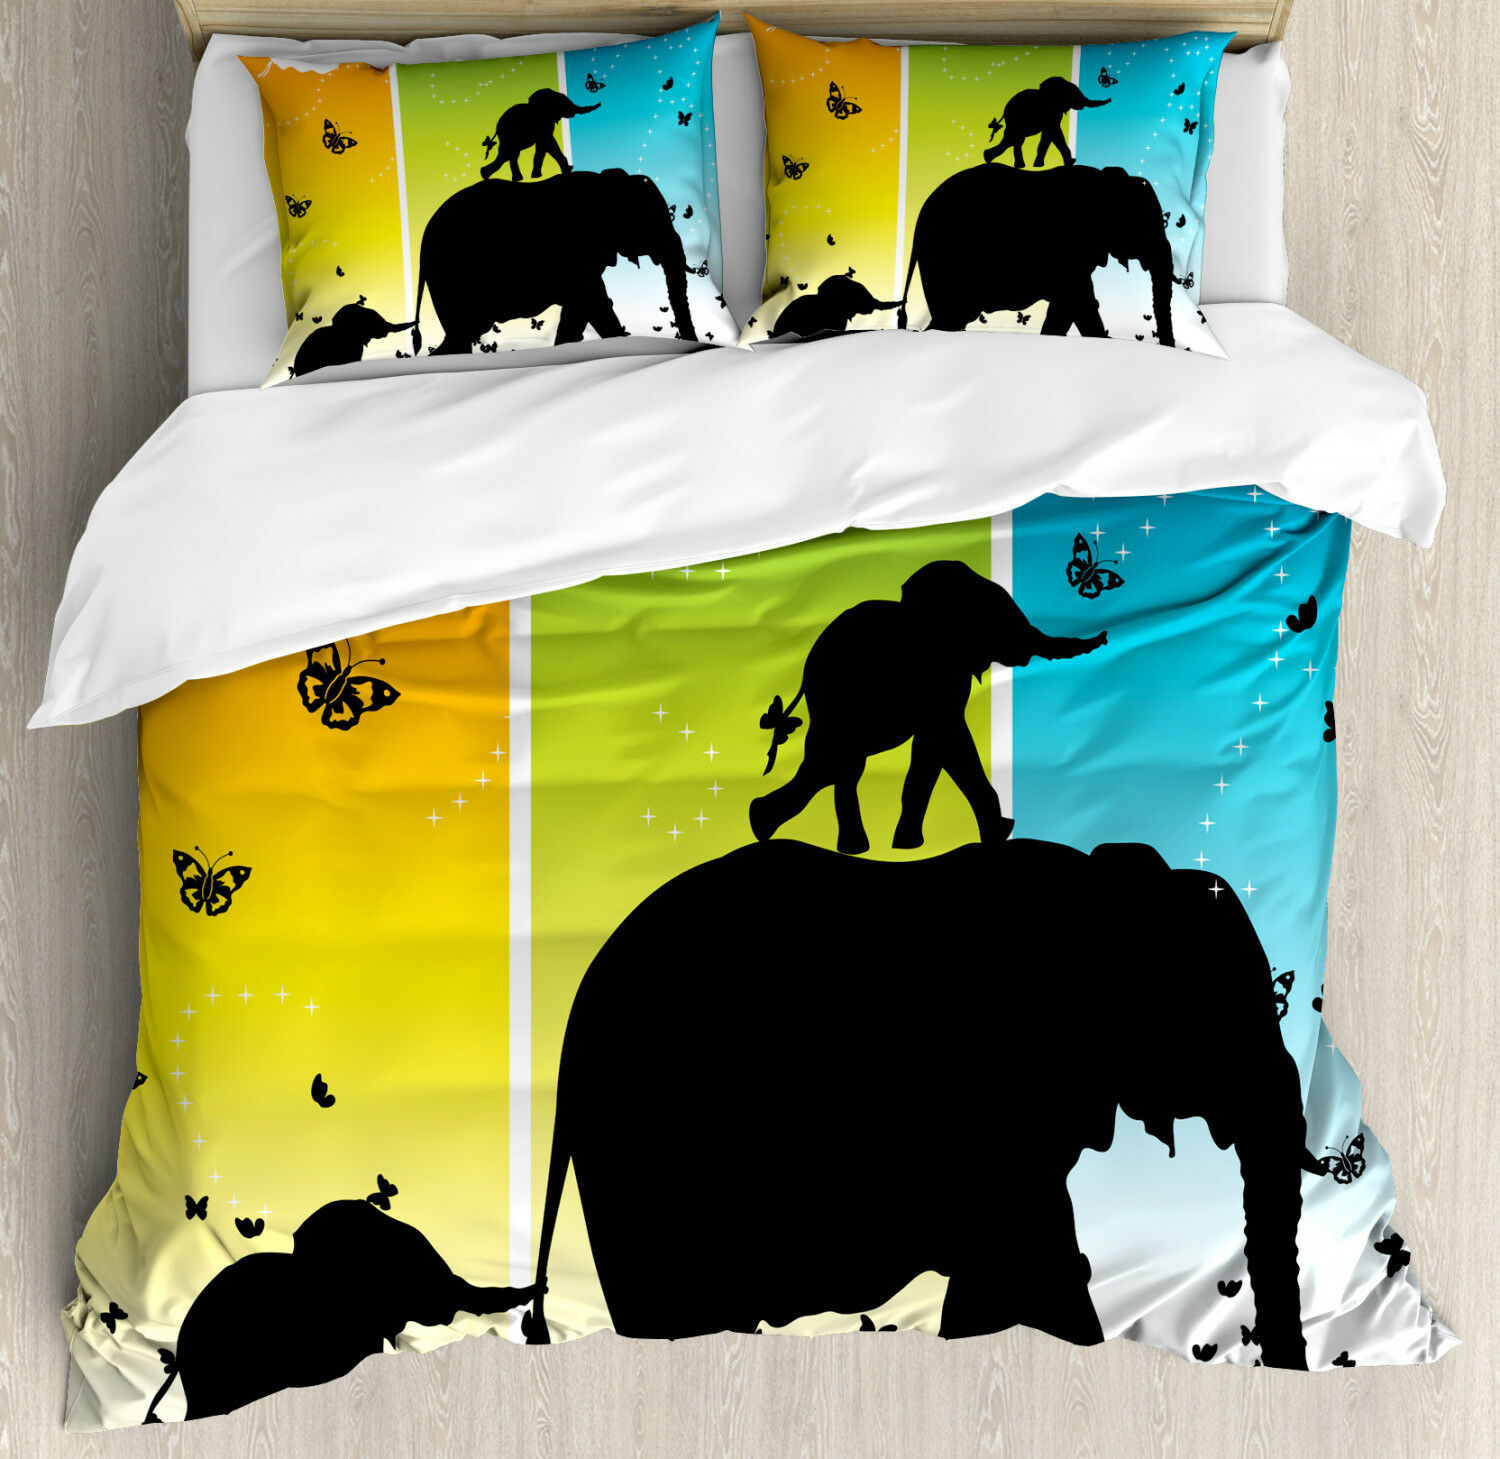 Zoo Duvet Cover Set with Pillow Shams Fantastic colorful Nature Print